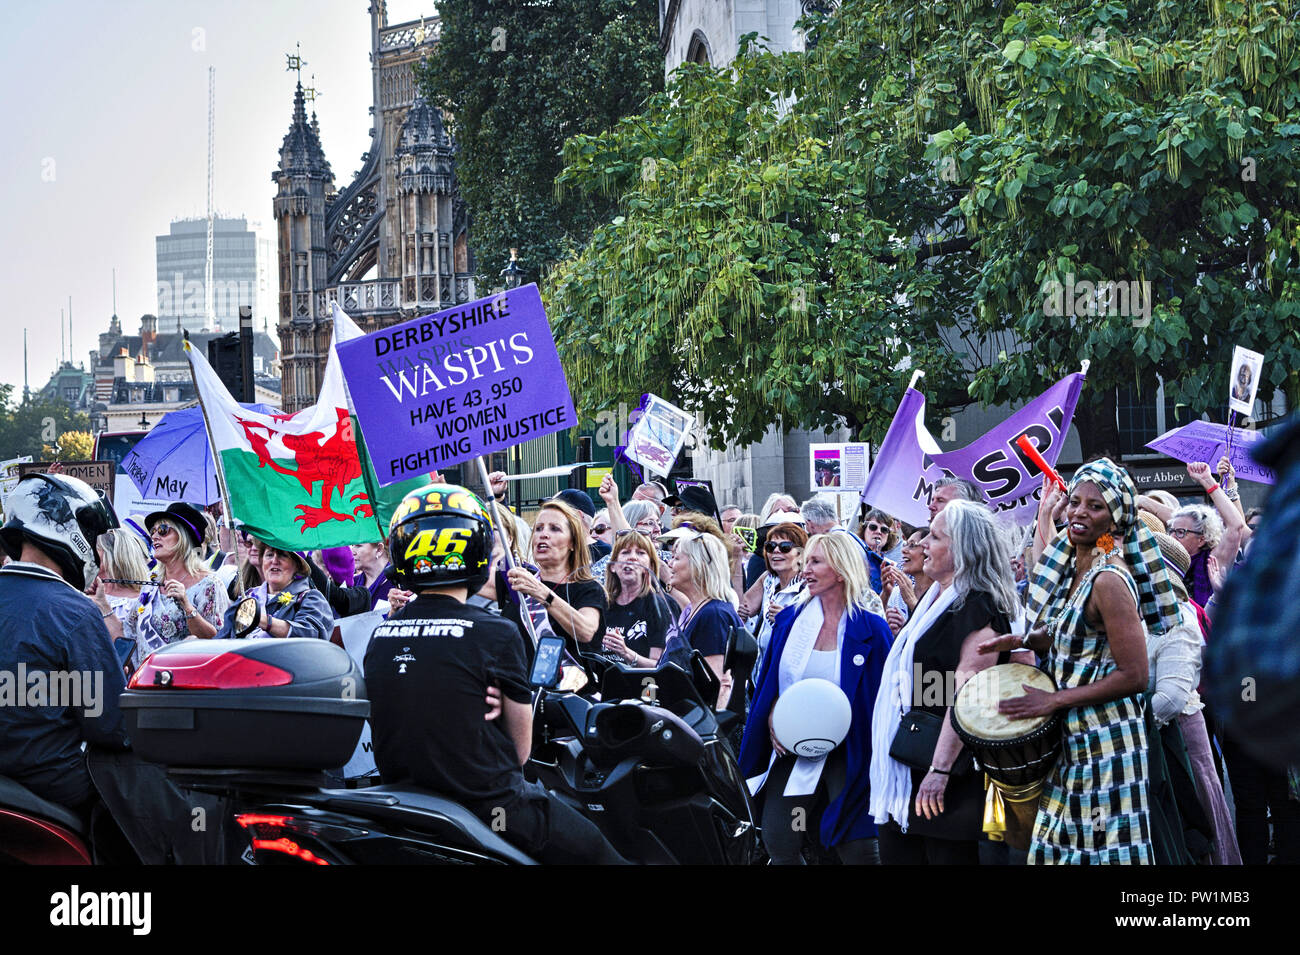 London, Women Against State Pension Inequality group campaign. Protesters block road outside Parliament. - Stock Image